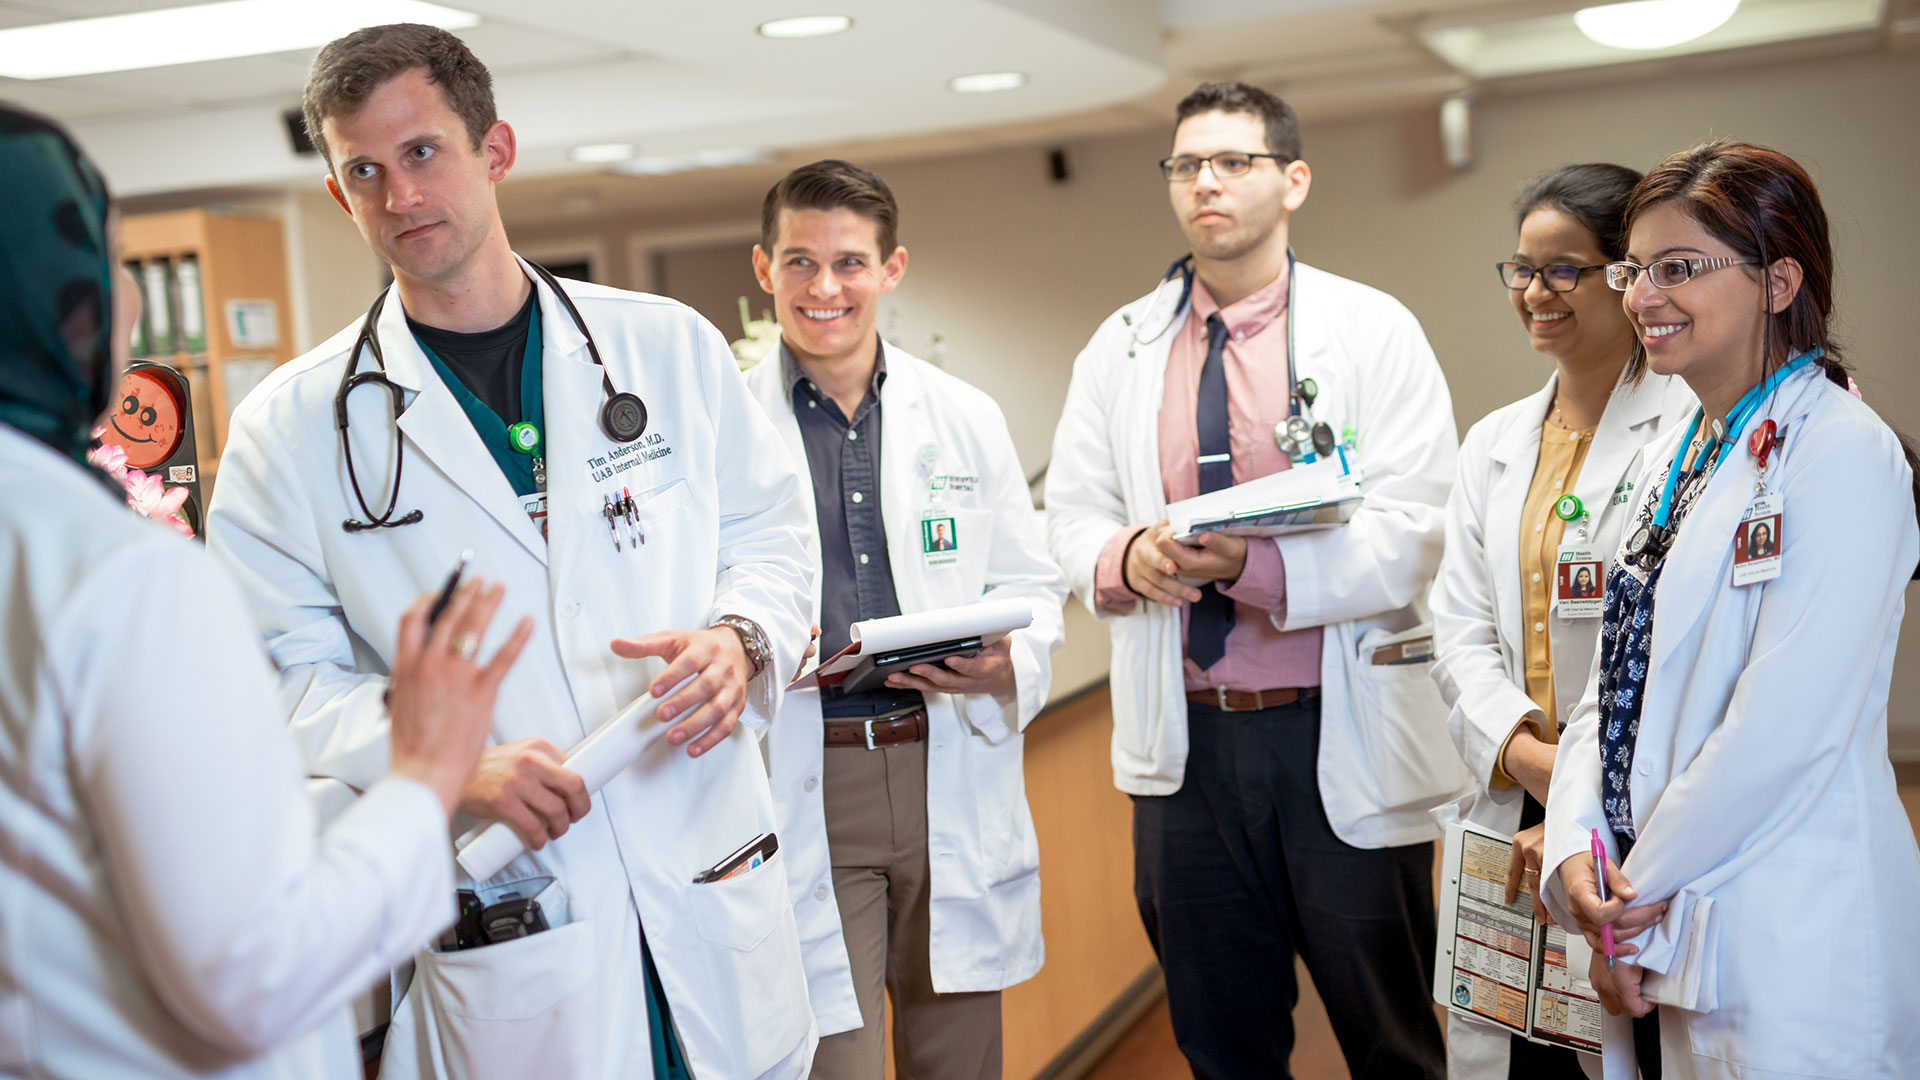 students and doctor talking